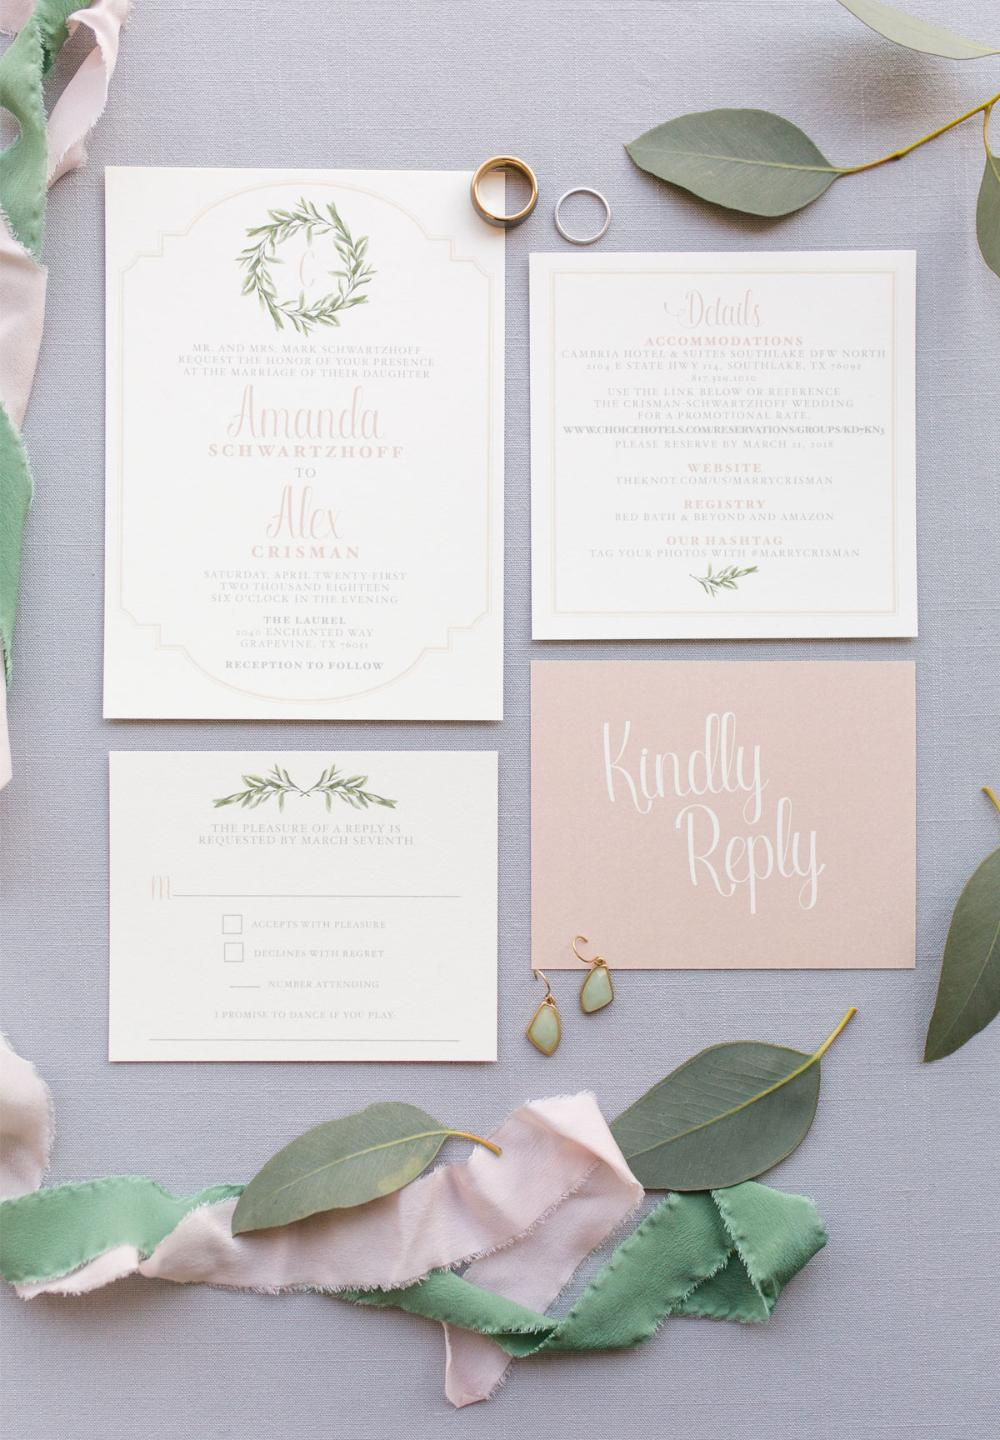 Pink Blush Neutral Ivory Greenery Leaves Wreath Monogram Wedding Invitation with Details and RSVP